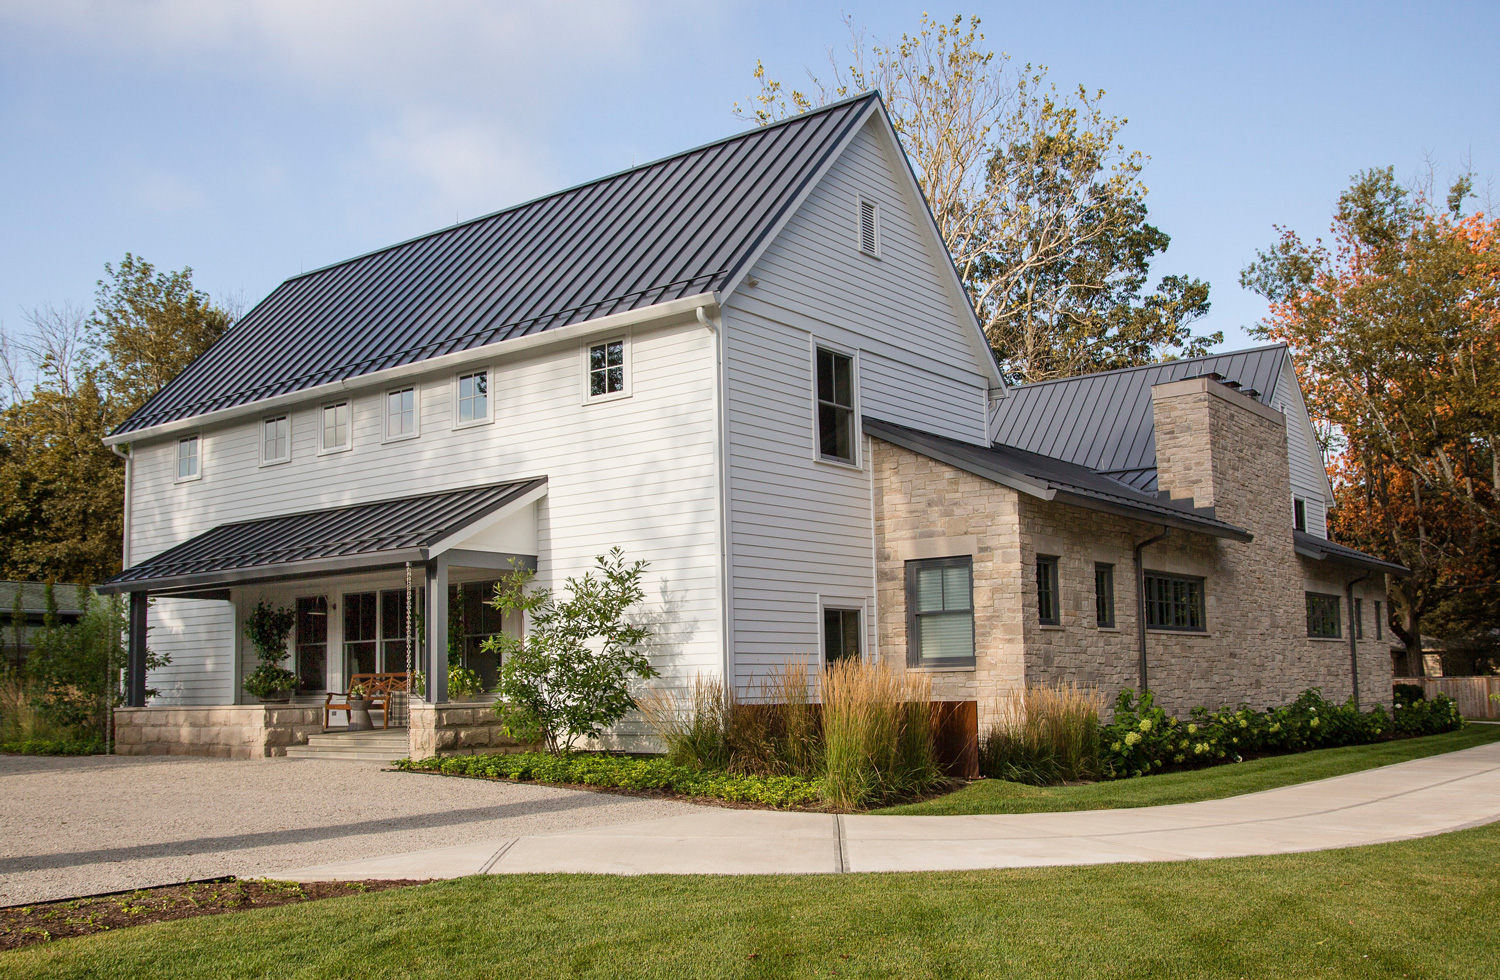 A U-shape modern farmhouse focuses attention inward rather than outward to the street.